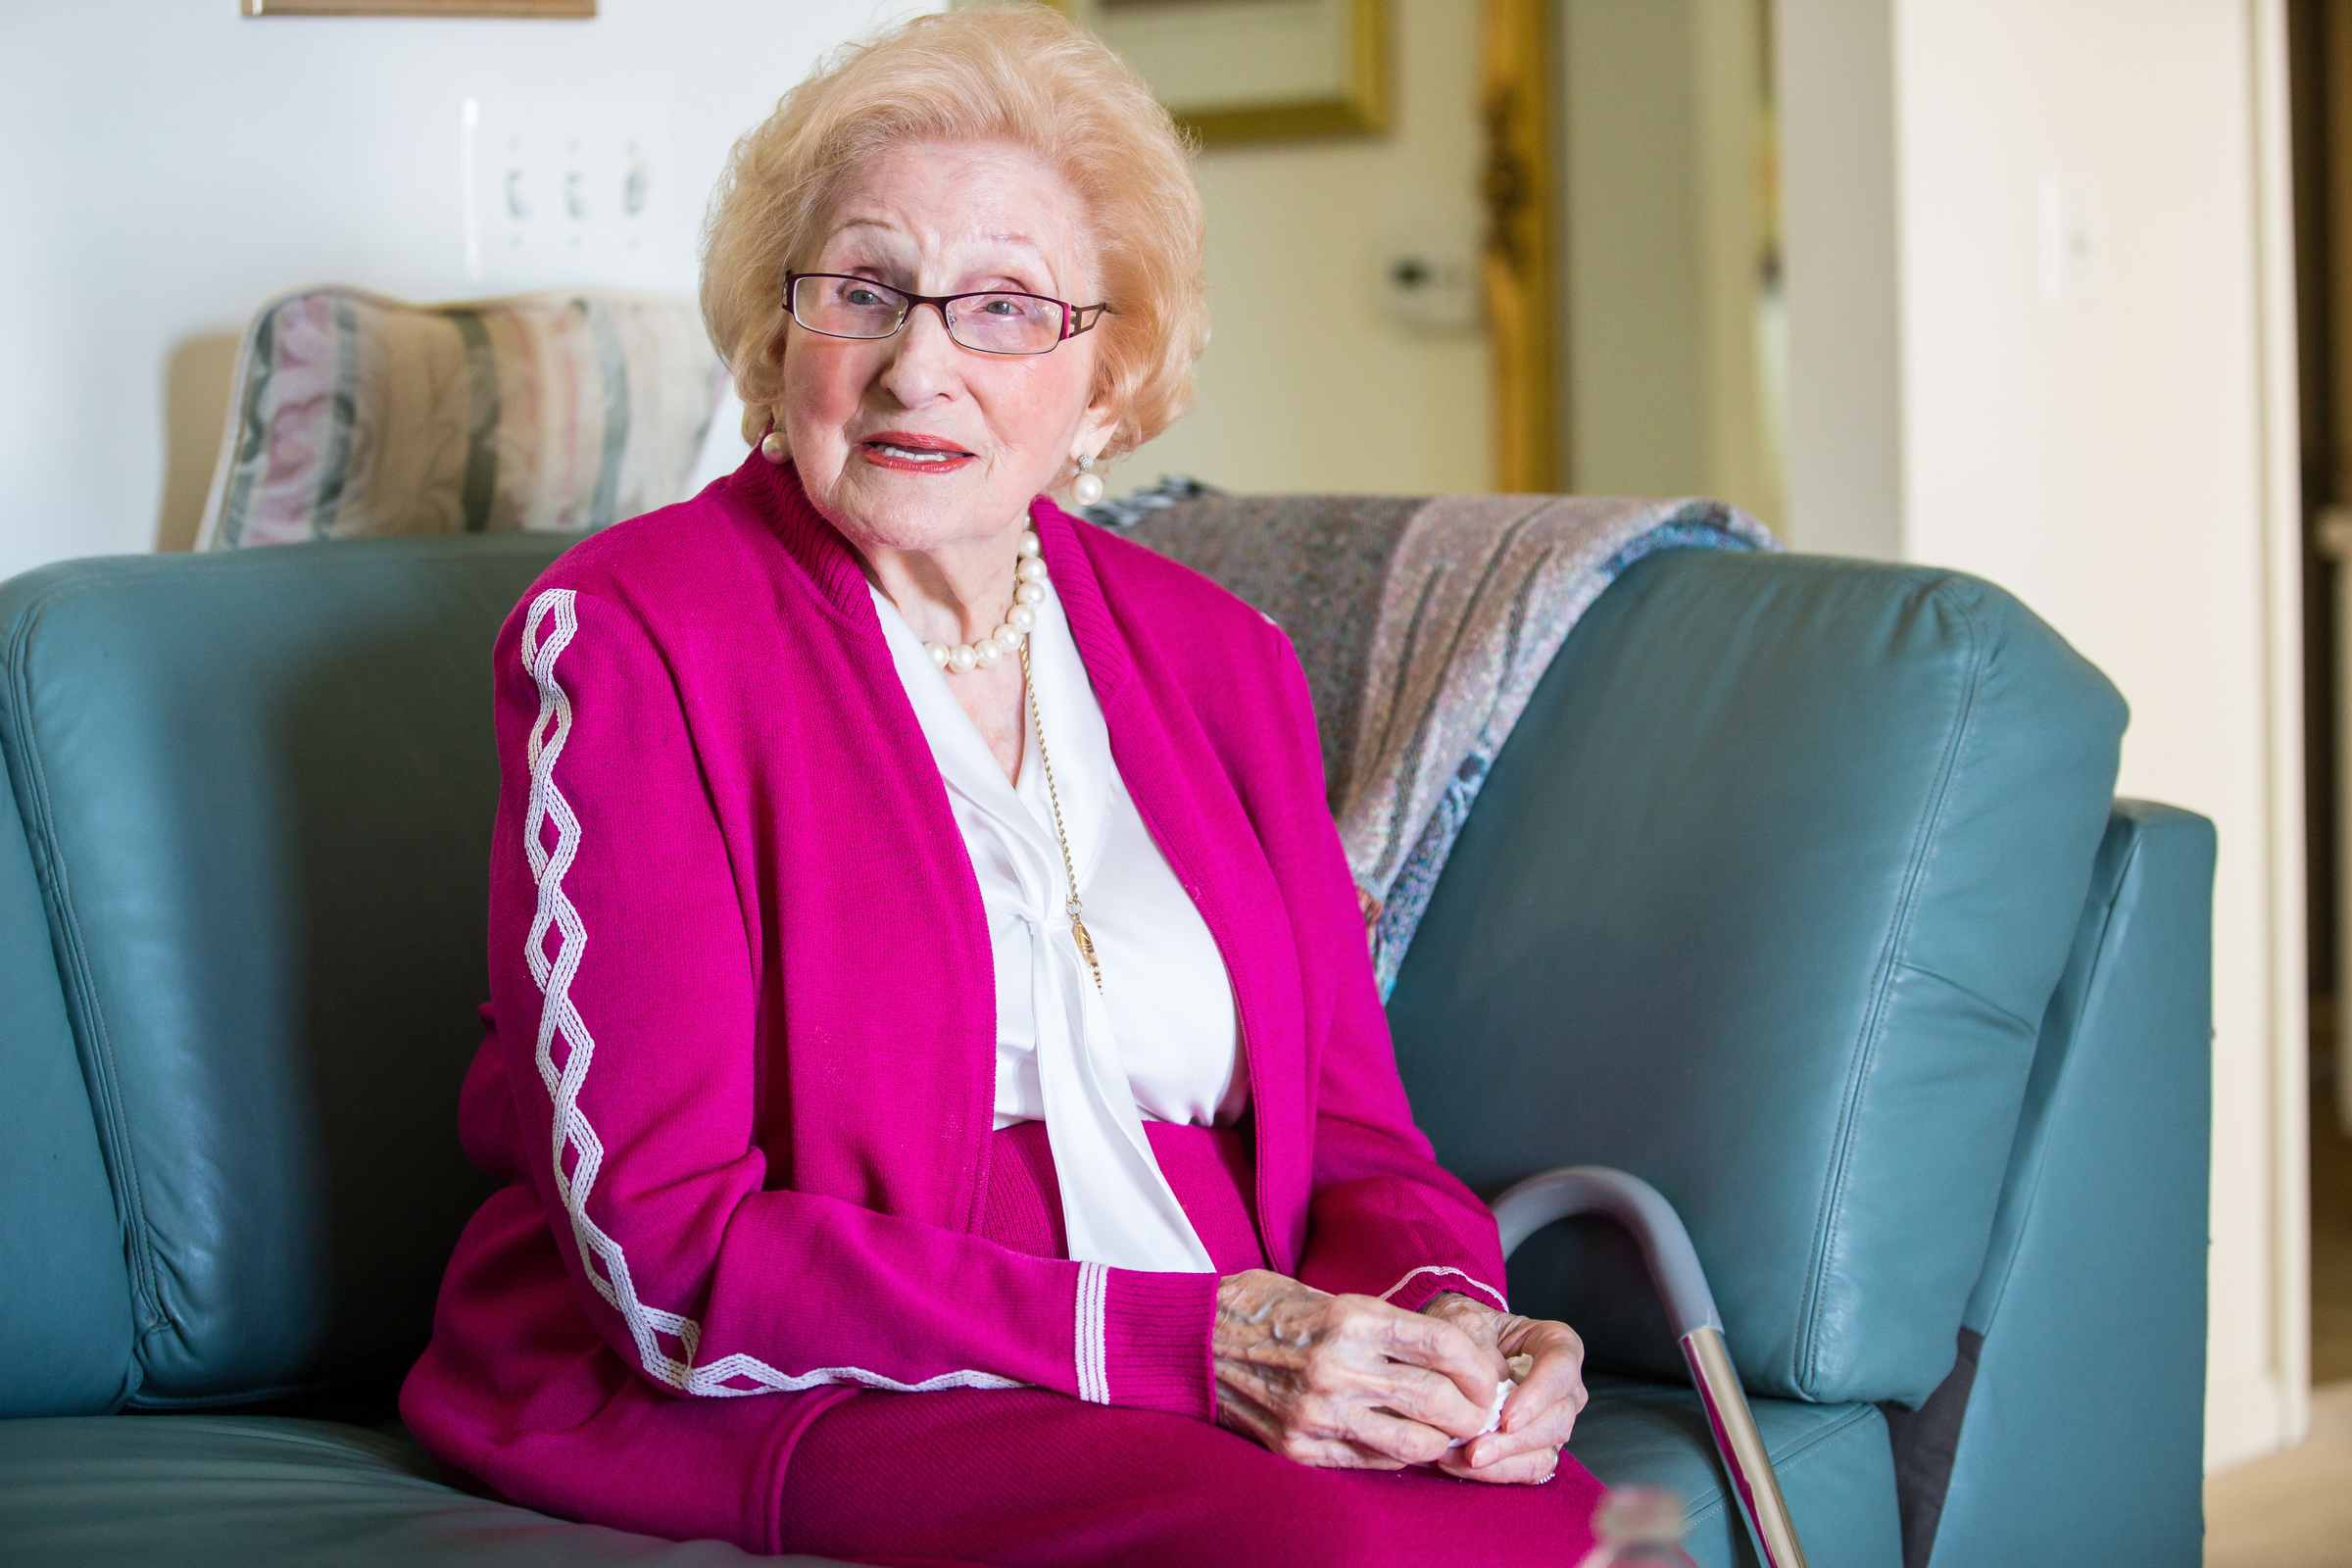 Charlote Weiss, 93, is one of five sisters who was in the Auschwitz concentration camp and survived. She emigrated to the United States in 1949, moved to Camden in 1960, and now lives in Voorhees.